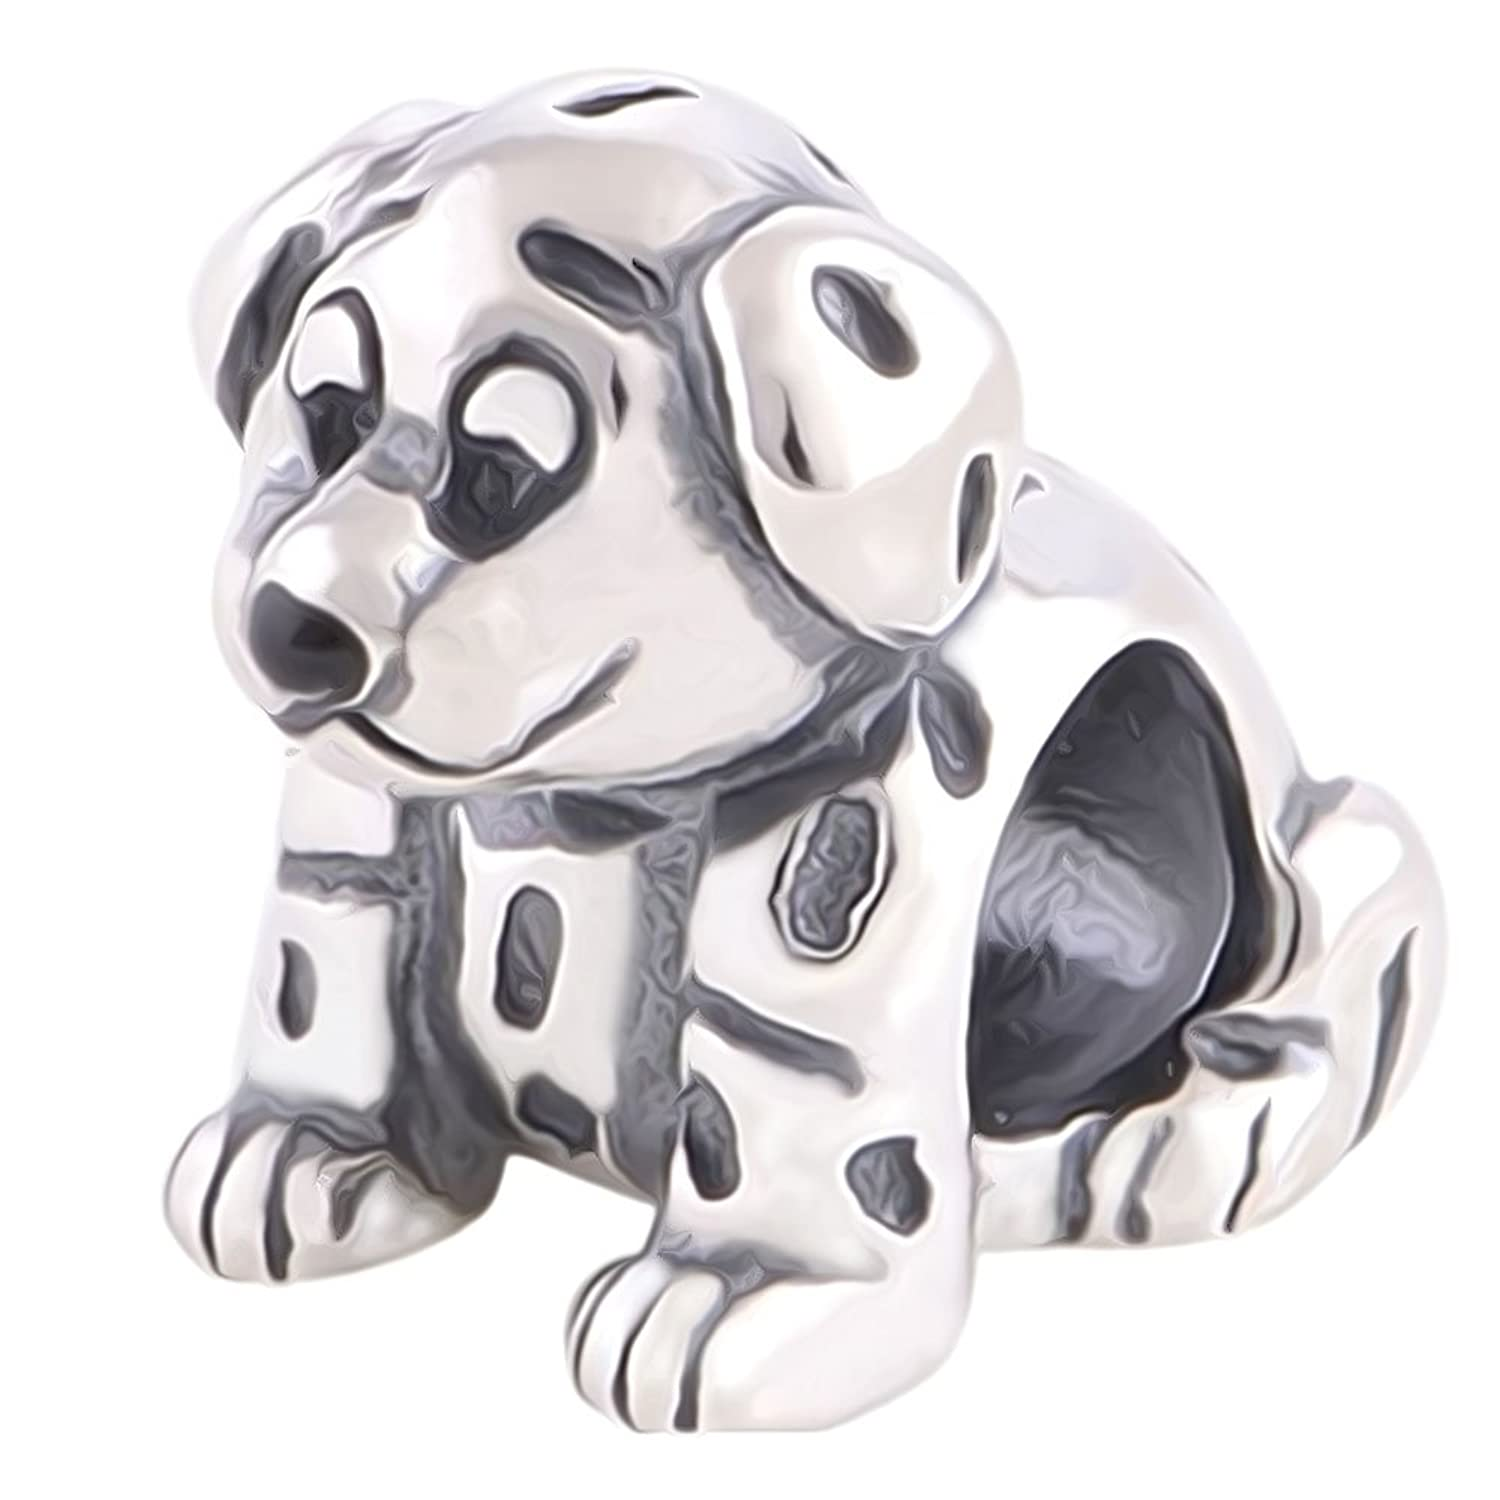 [Sponsored]Dalmatian Puppy Dog Charm Bracelet Bead - Sterling Silver 925 - Gift boxed AbgF8T